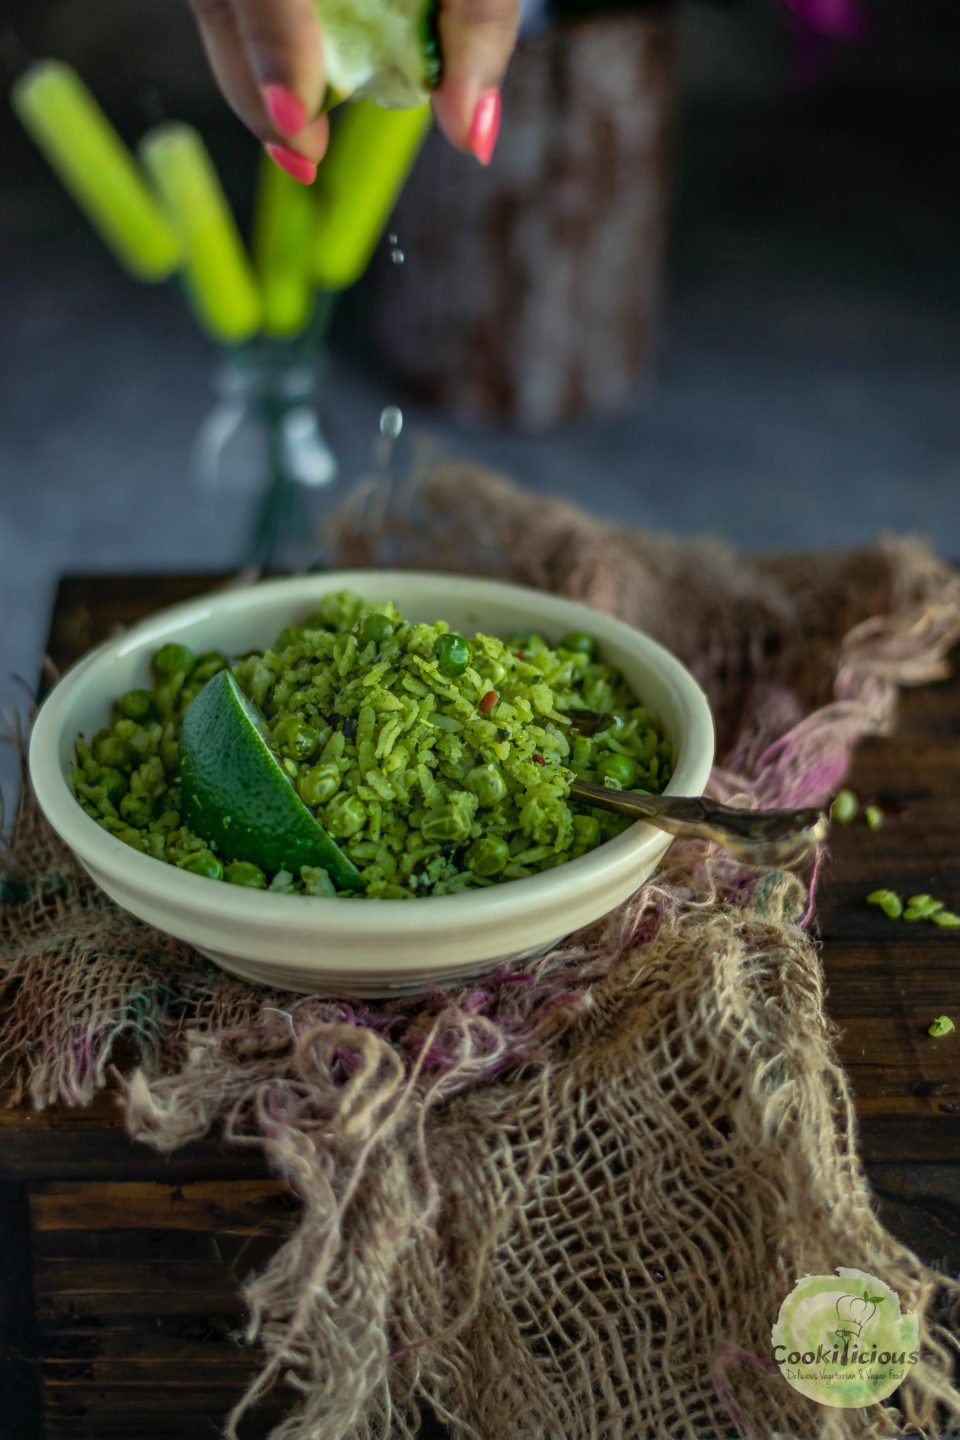 a hand squeezing lemon juice over a bowl of this plant-based snack poha (rice flakes)